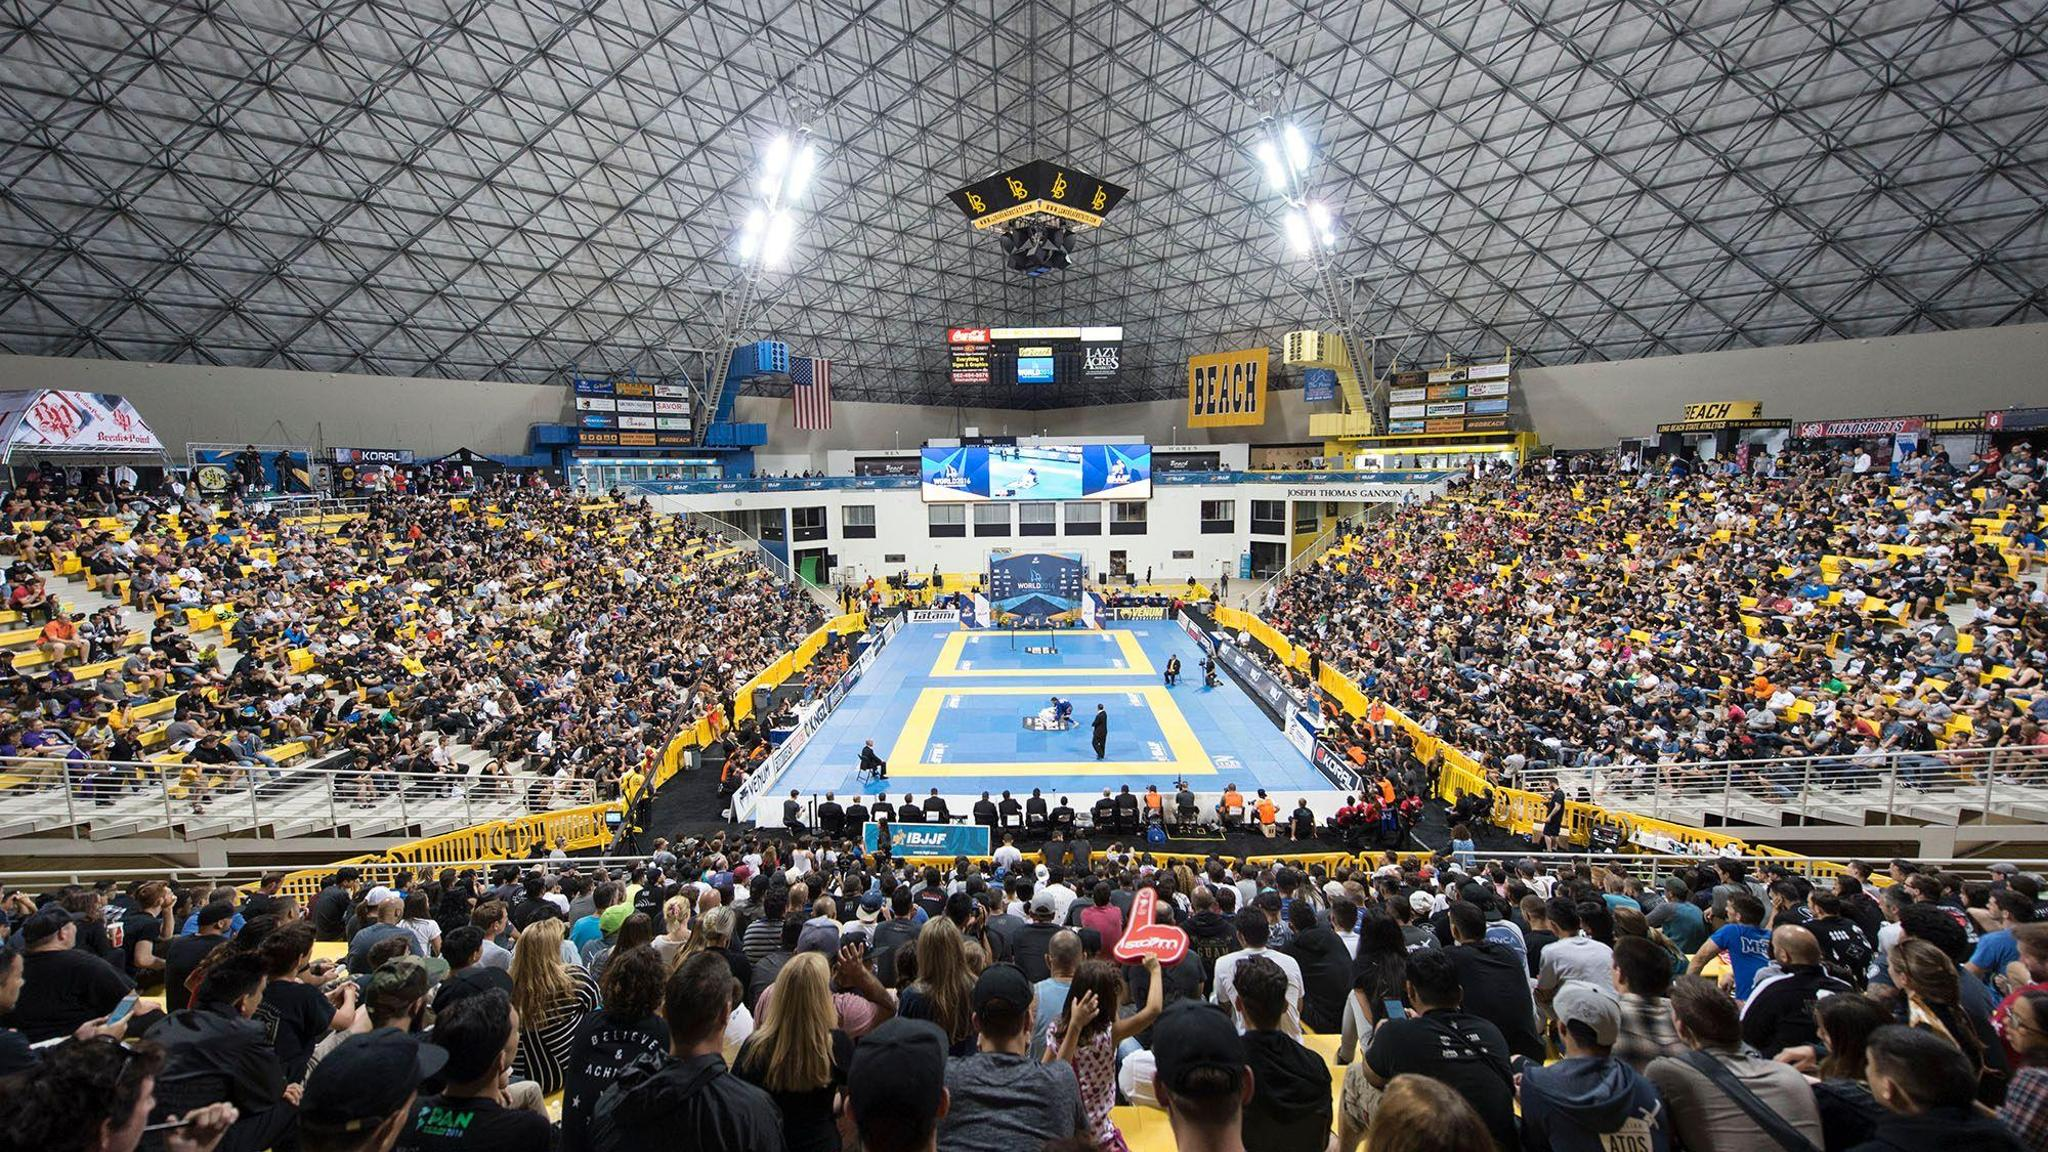 Csu Long Beach Walter Pyramid